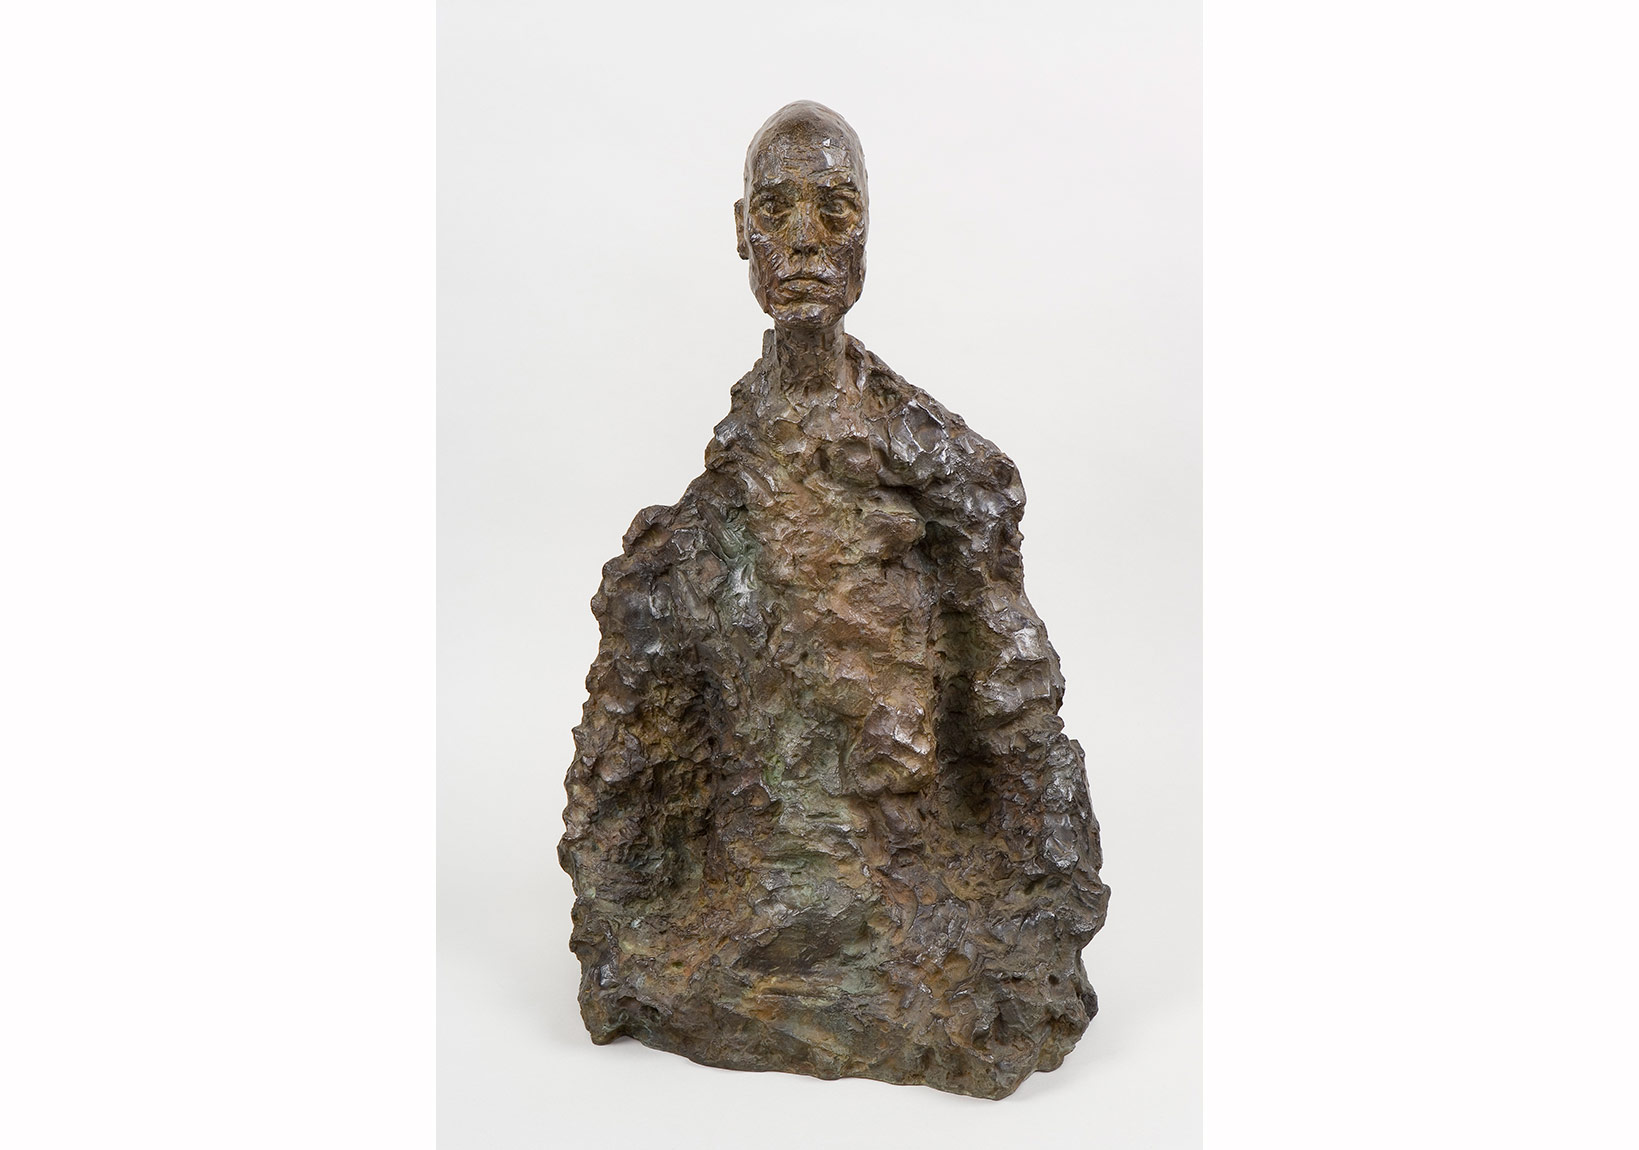 Alberto Giacometti, Erkek Büstü (Lotar II), yak. 1964 1965 Bust of a Man (Lotar II), c. 1964-1965 Bronz / Bronze 57,8 x 38,2 x 25 cm Giacometti Vakfı Koleksiyonu, Paris, env. 1994-0079 / Giacometti Foundation Collection, Paris, inv. 1994-0079 © Estate Giacometti (Fondation Giacometti + ADAGP) Paris, 2015